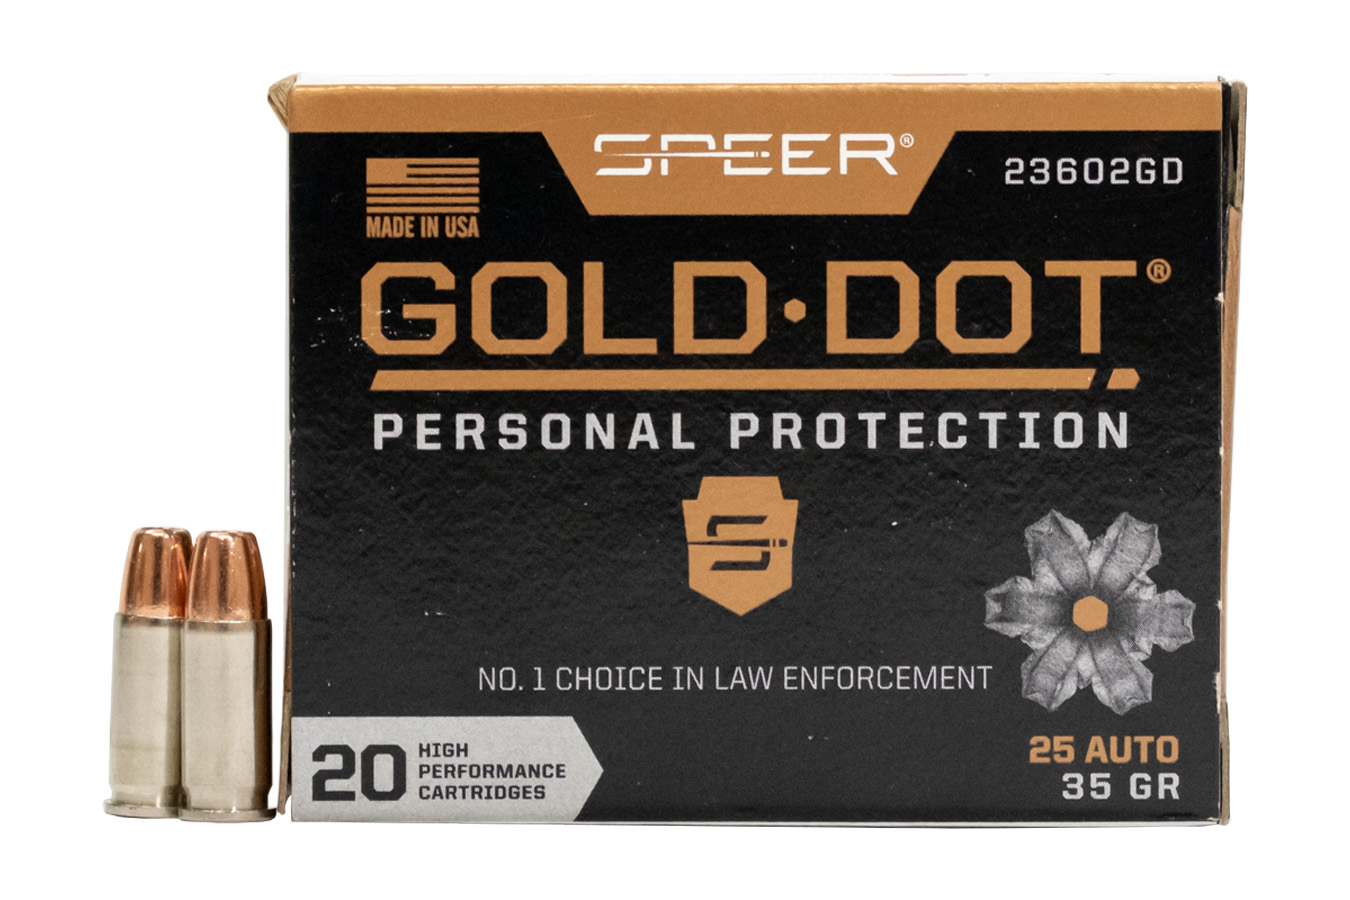 25 AUTO 35 GR GOLD DOT HOLLOW POINT